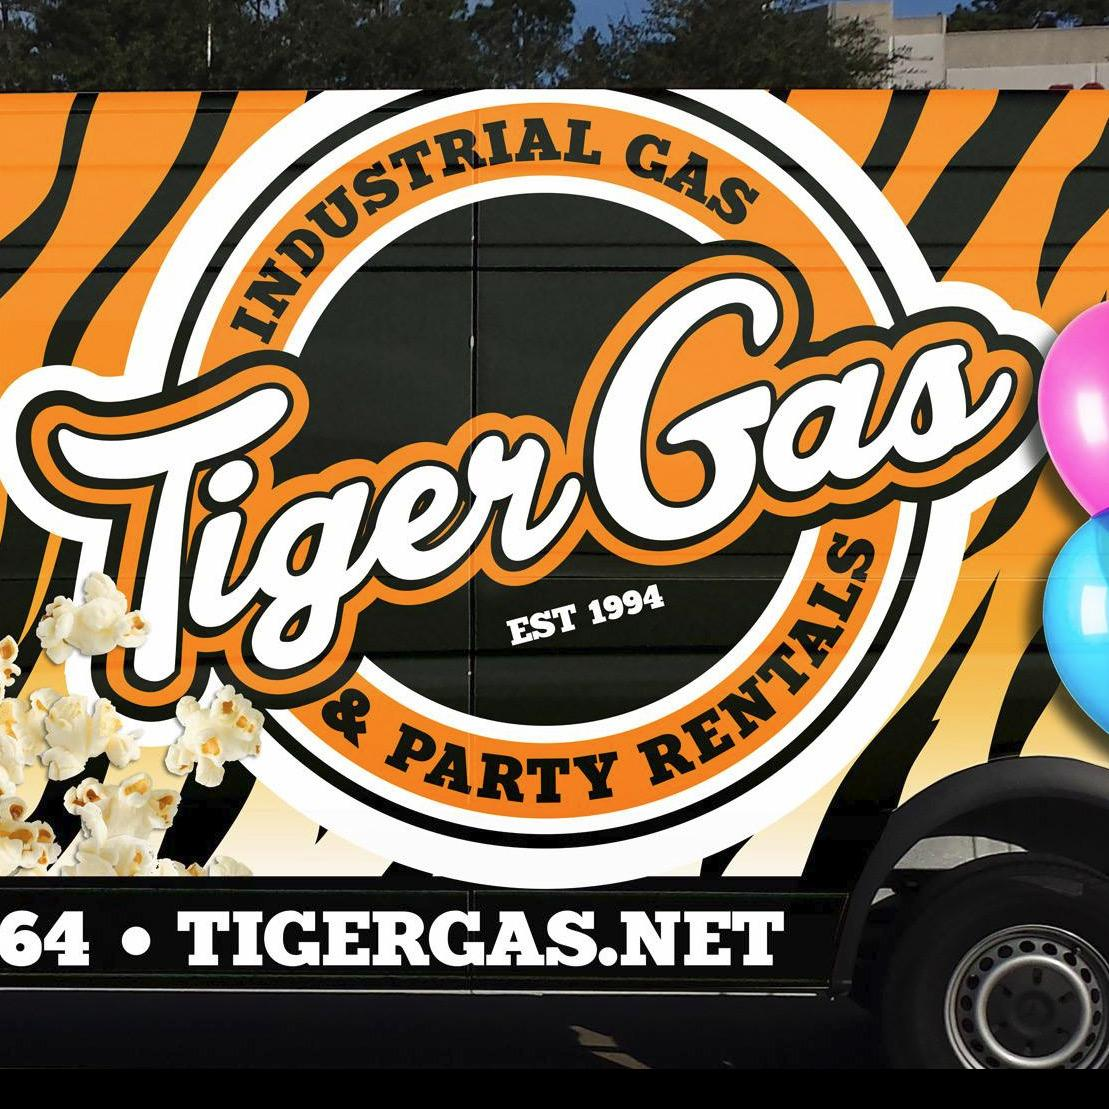 image of the TIGER Gas